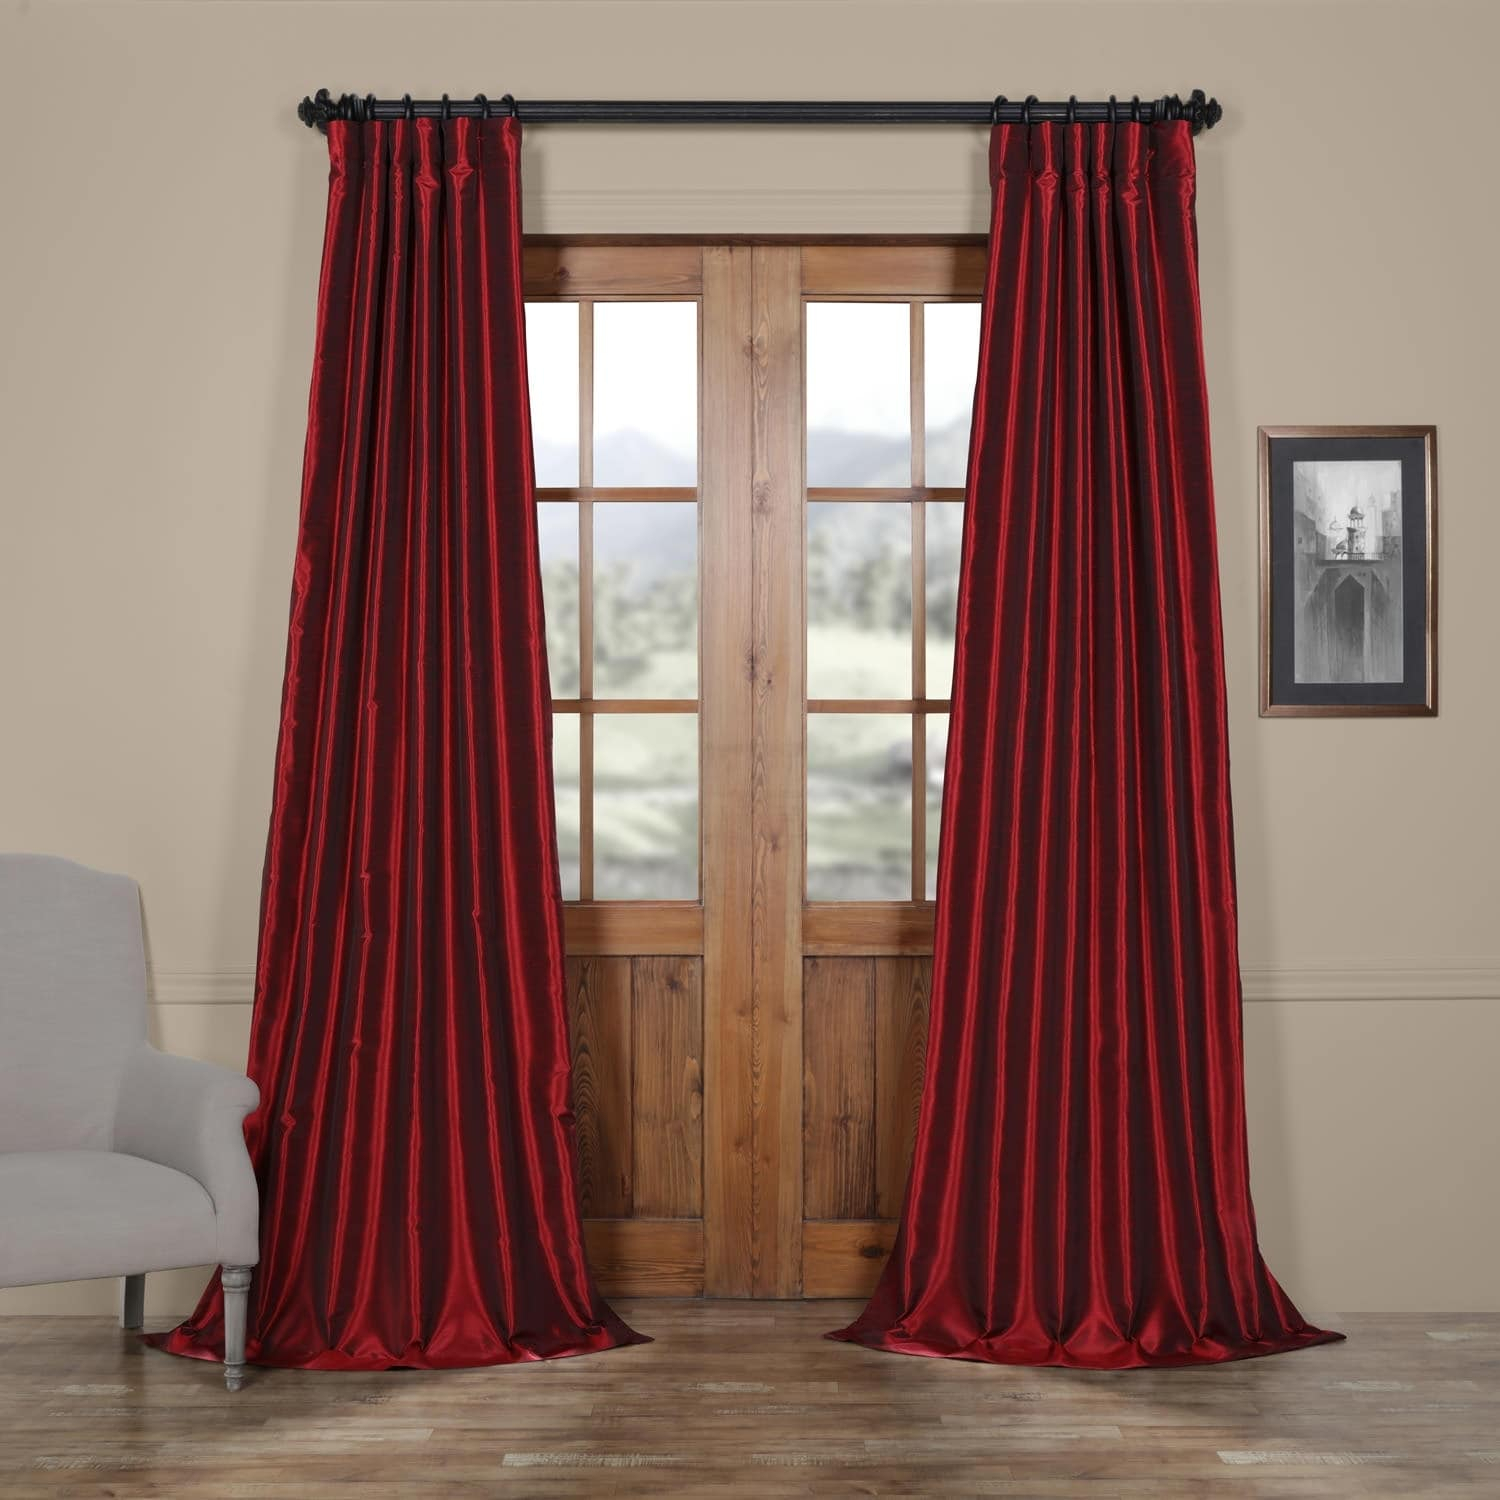 Exclusive Fabrics True Blackout Vintage Textured Faux Dupioni Silk Curtain Panel Within True Blackout Vintage Textured Faux Silk Curtain Panels (View 6 of 30)